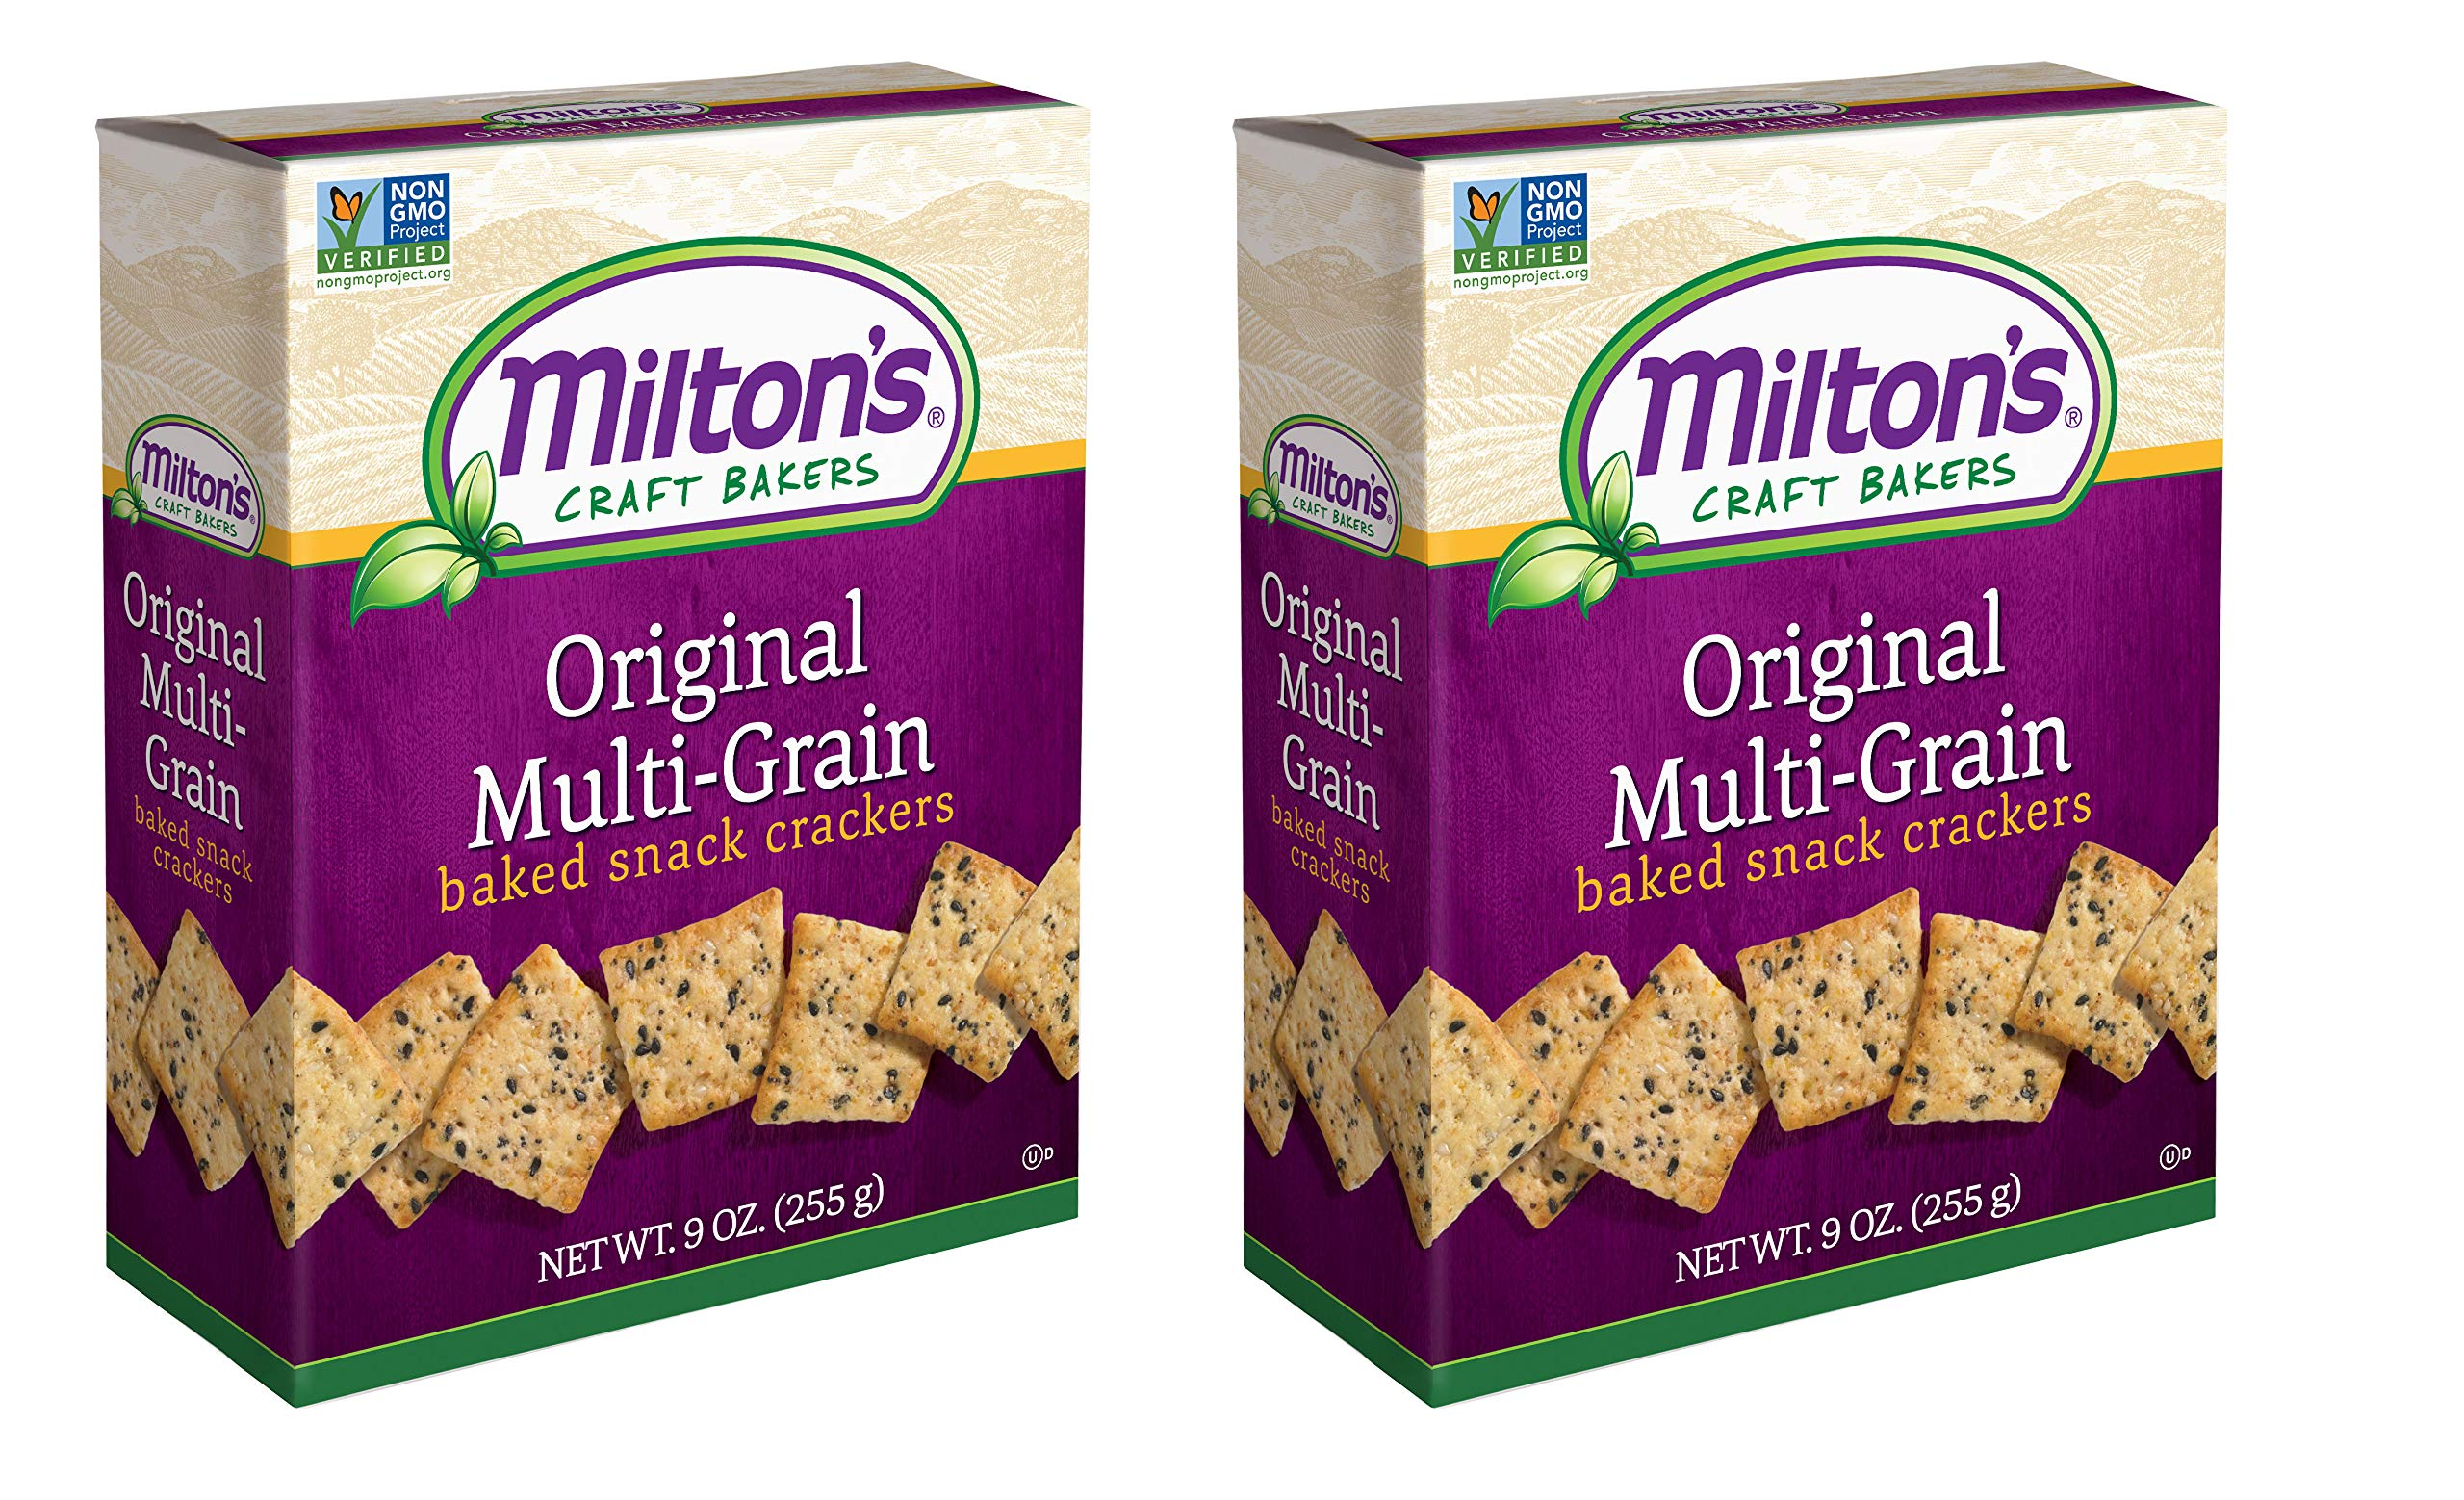 Milton's Snack Crackers (Multi-Grain). Multi Pack of Multi-Grain Non-GMO Baked Crackers (Pack of 2, 6.5 ounce box). by Milton's Craft Bakers